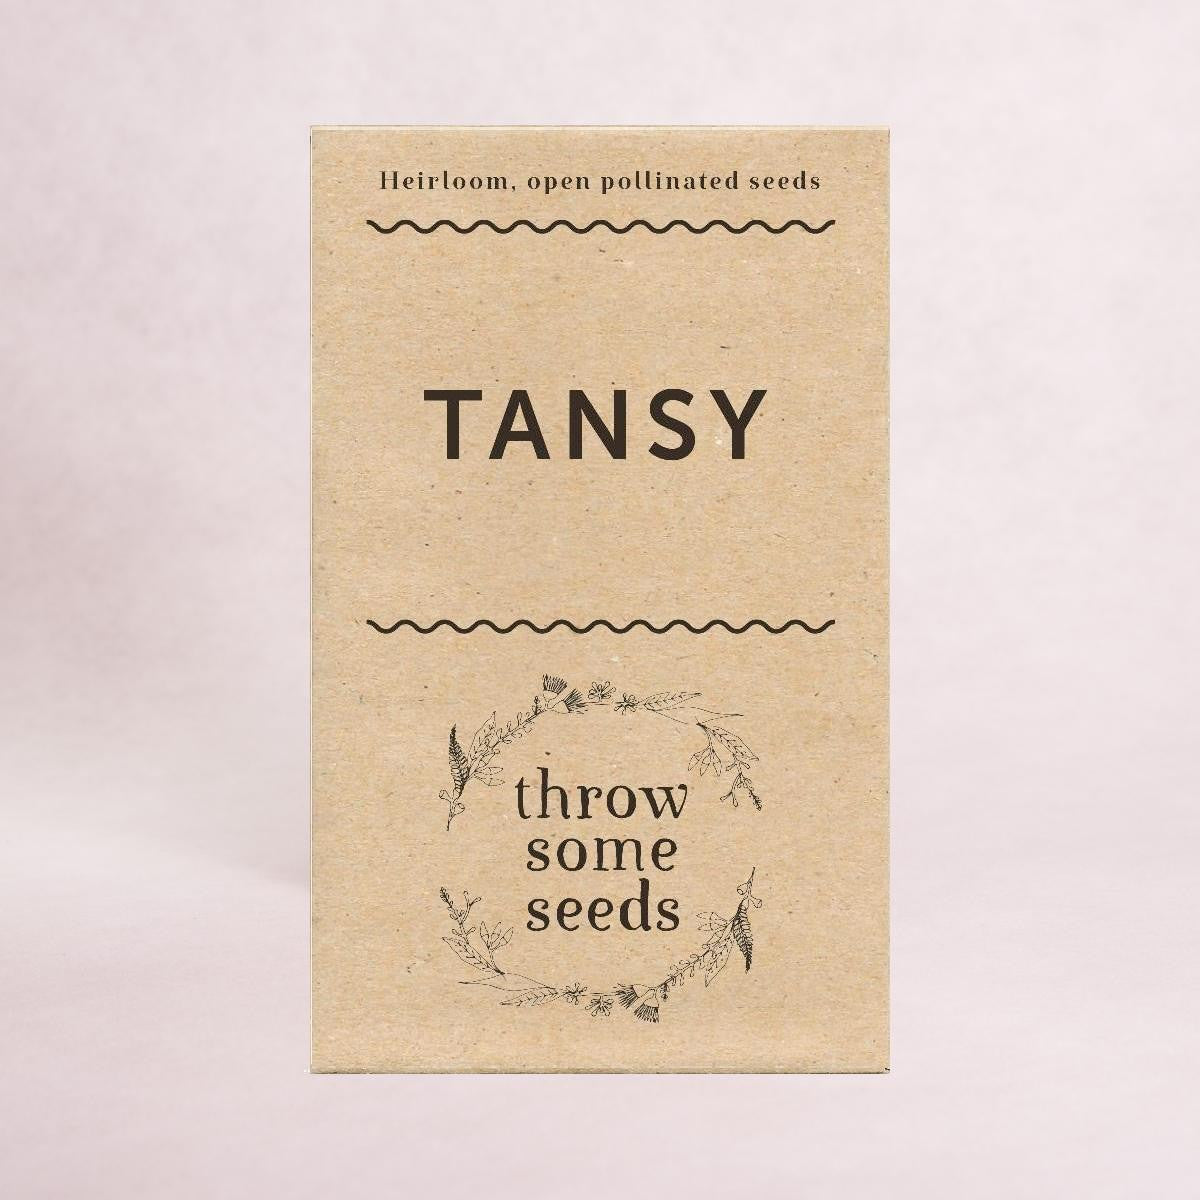 Tansy - Heirloom Seeds - Throw Some Seeds